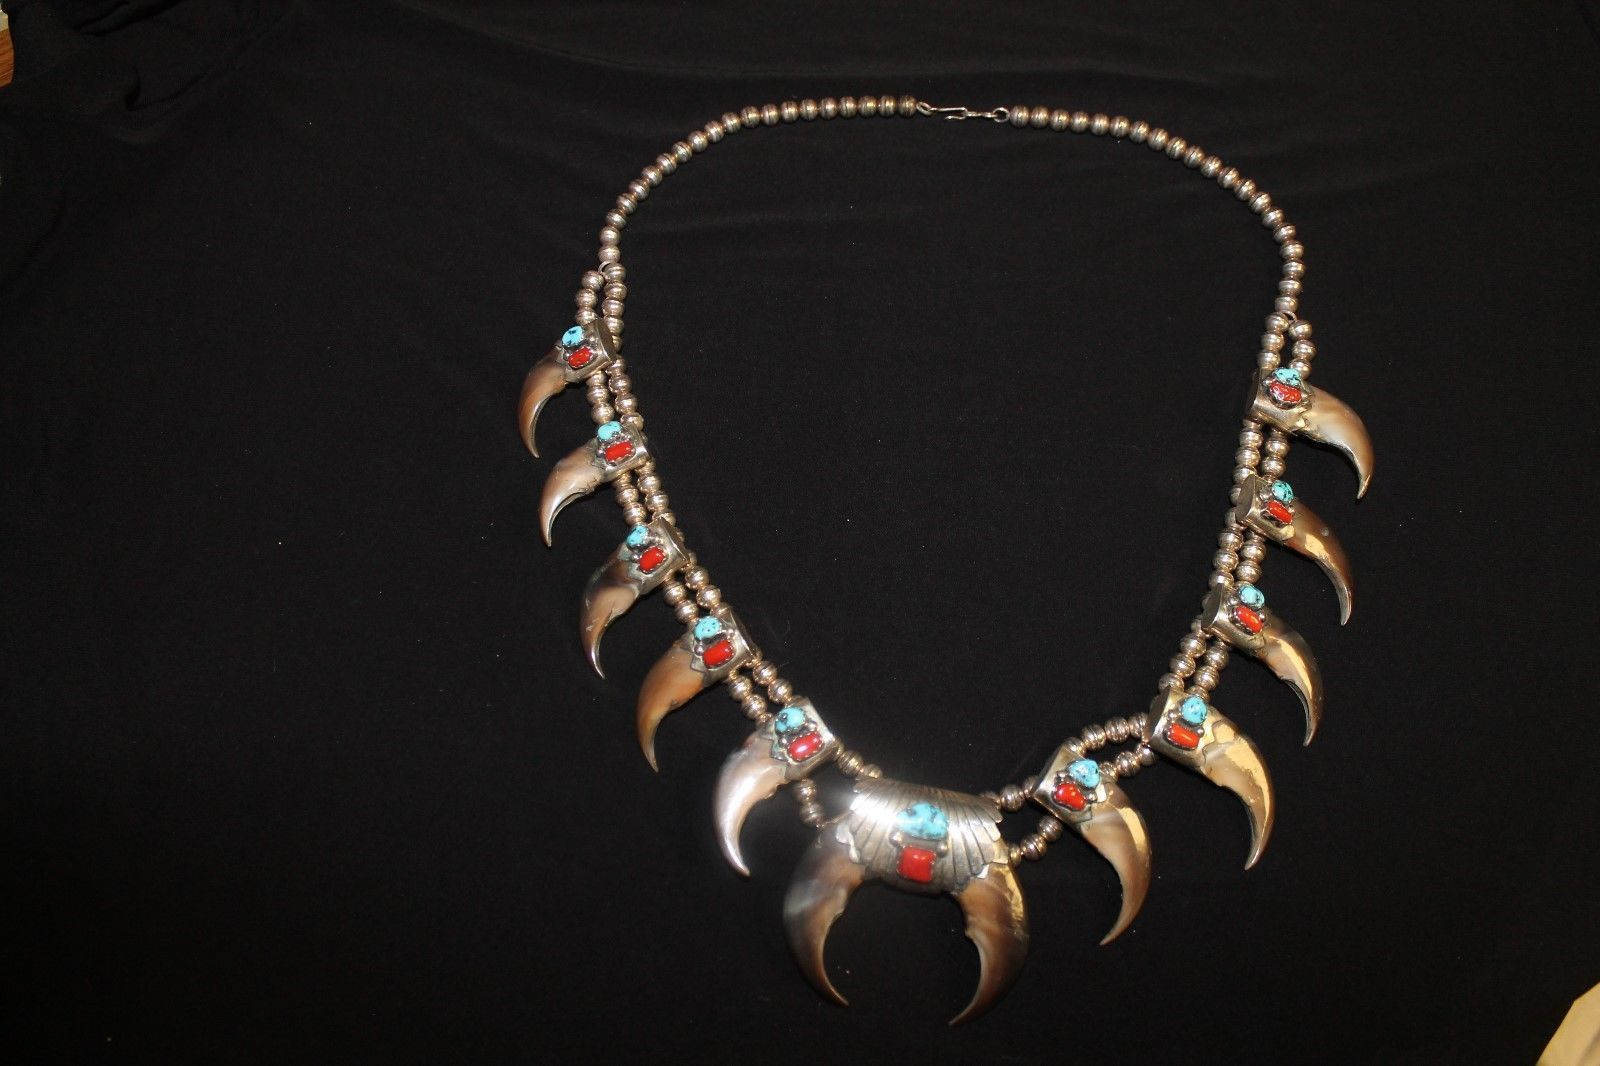 Rare Vintage Dead Pawn Turquoise Coral And Claw Squash Blossom Necklace https://t.co/2zewV2RX5M https://t.co/OgNMYcOCe7 http://twitter.com/Soivzo_Riodge/status/774127599408652288